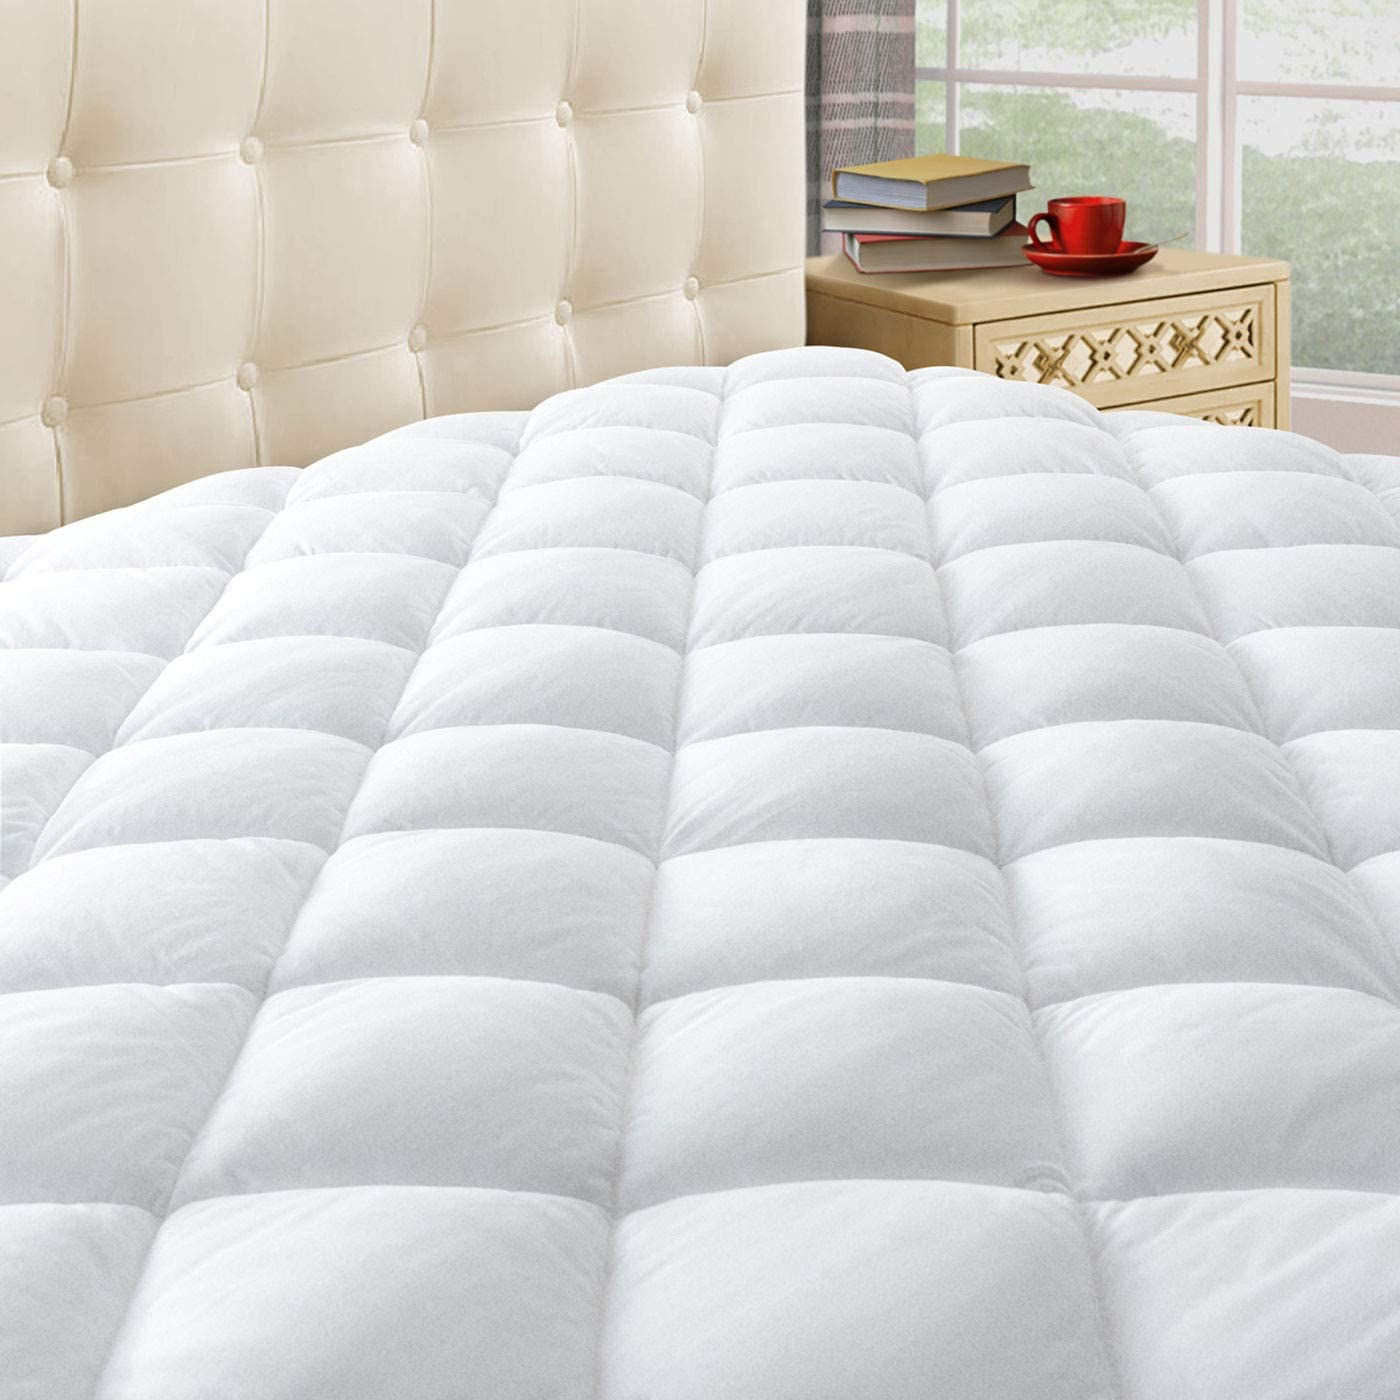 "Taupiri Twin Quilted Mattress Pad Cover with Deep Pocket (8""-21""), Cooling Soft Pillowtop Mattress Cover, Hypoallergenic Down Alternative Mattress Topper"